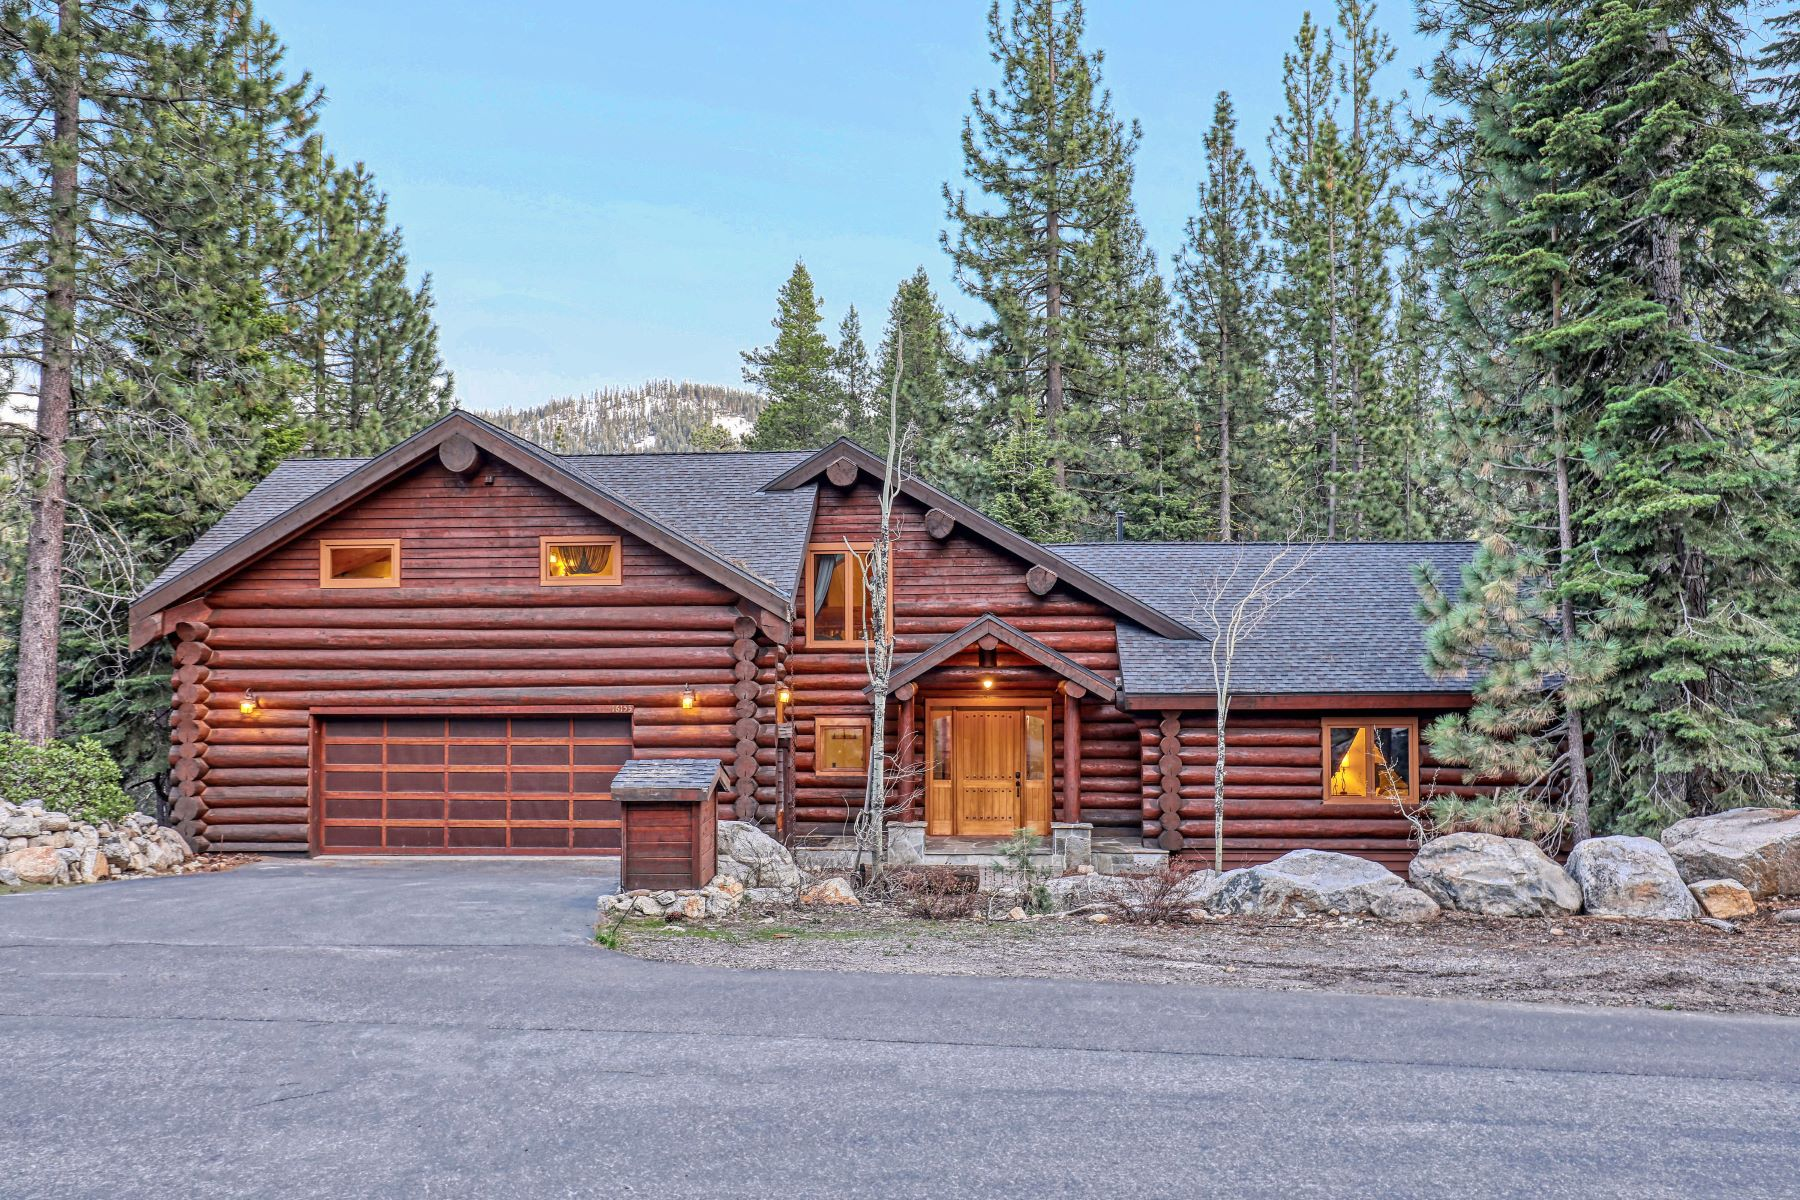 Property for Active at Nestled among the trees in the coveted Wolfe Estates 16153 Wolfe Drive Truckee, California 96161 United States